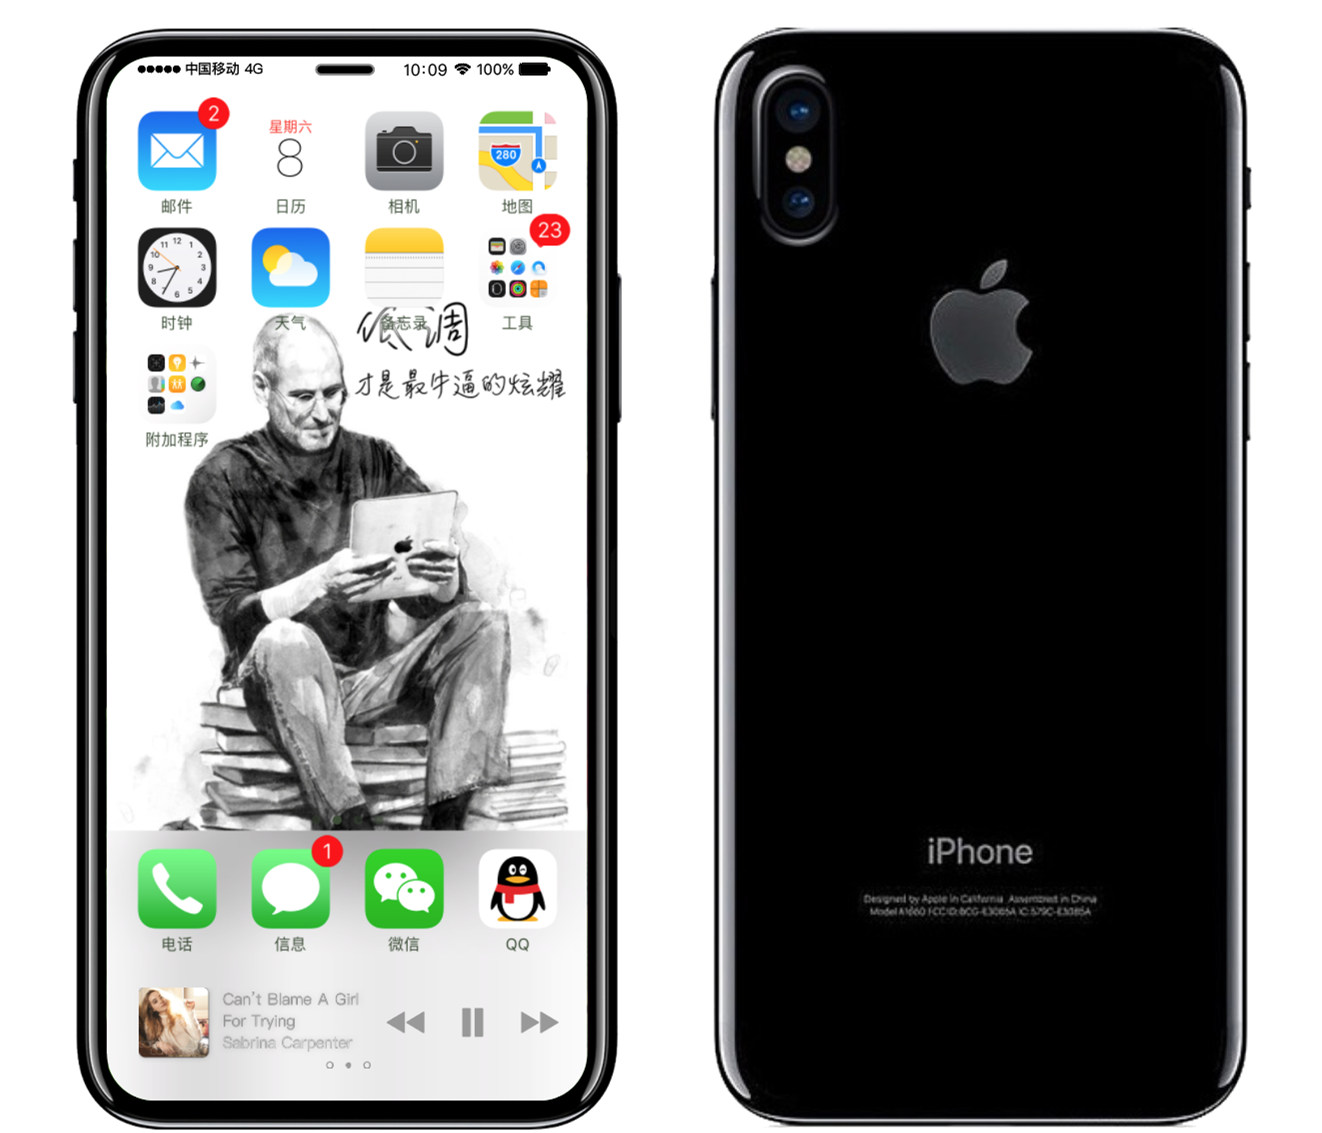 An Artists Rendering Of The IPhone 8 Based On Latest Rumors